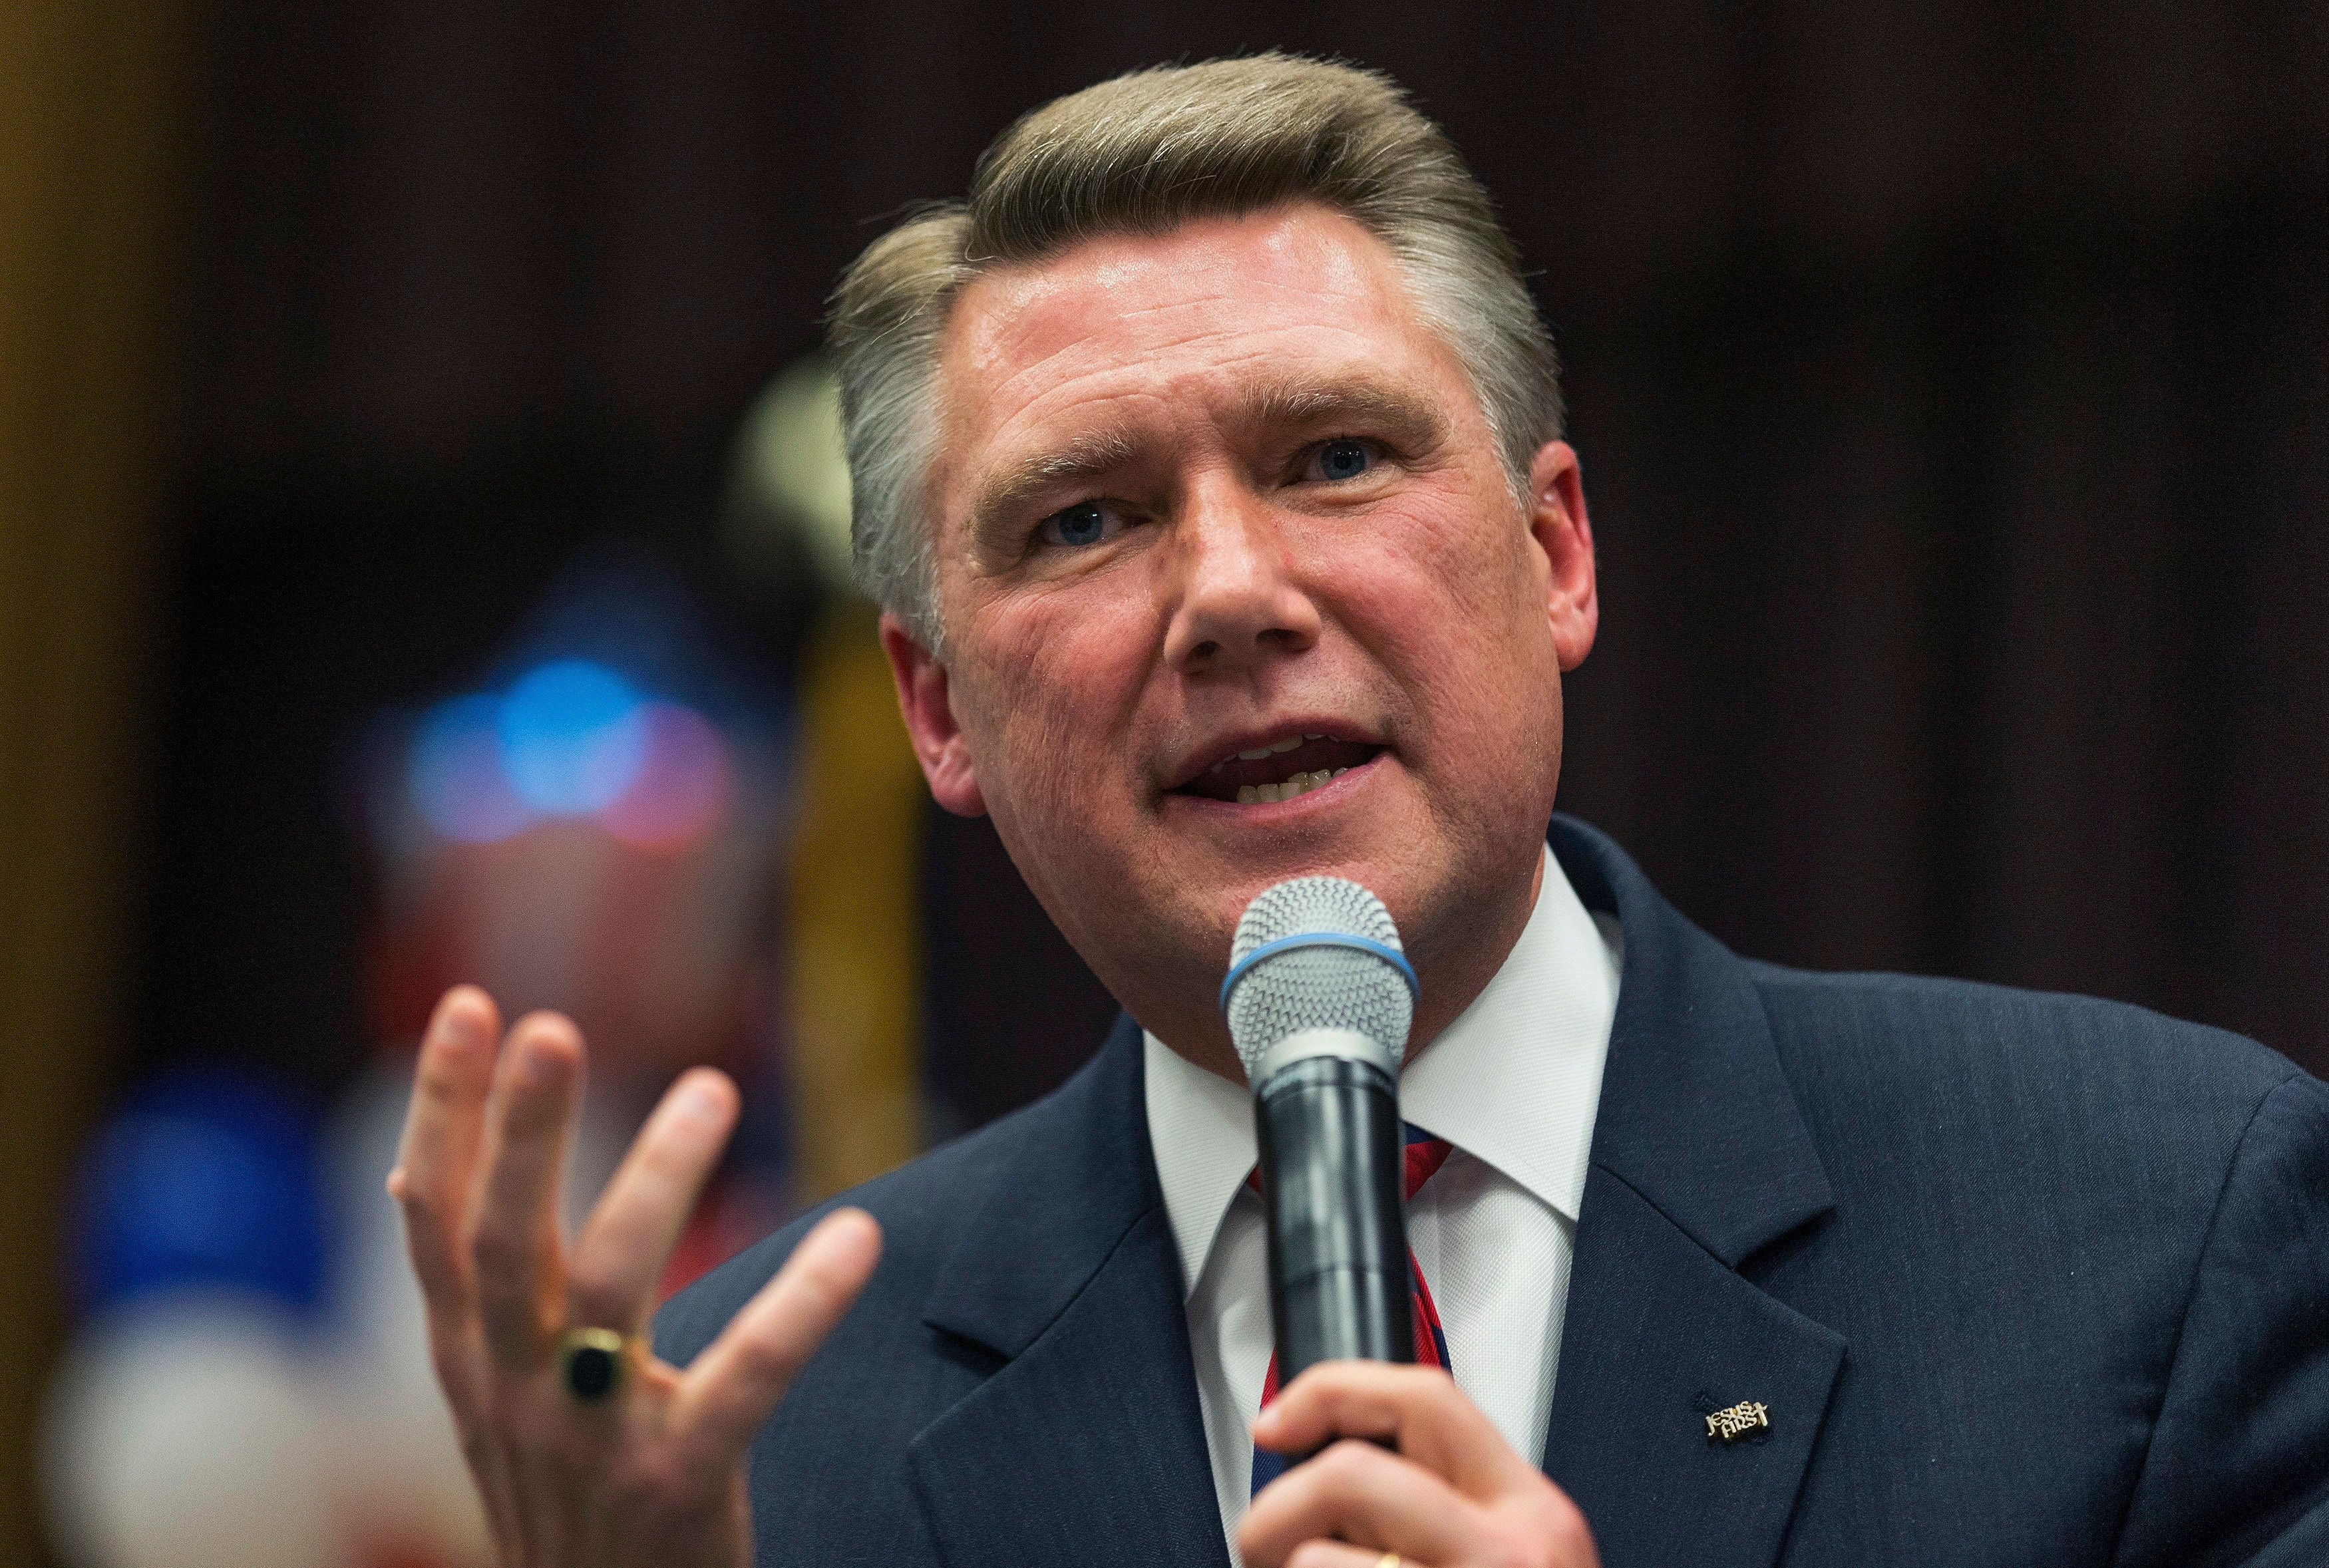 Republican candidate for the U.S. Senate Mark Harris speaks to supporters during a volunteer meeting and rally at the Ardmore Auditorium in Winston-Salem, North Carolina April 8, 2014. Picture taken April 8, 2014. To match USA-NORTHCAROLINA-SENATE    REUTERS/Chris Keane (UNITED STATES - Tags: POLITICS ELECTIONS)